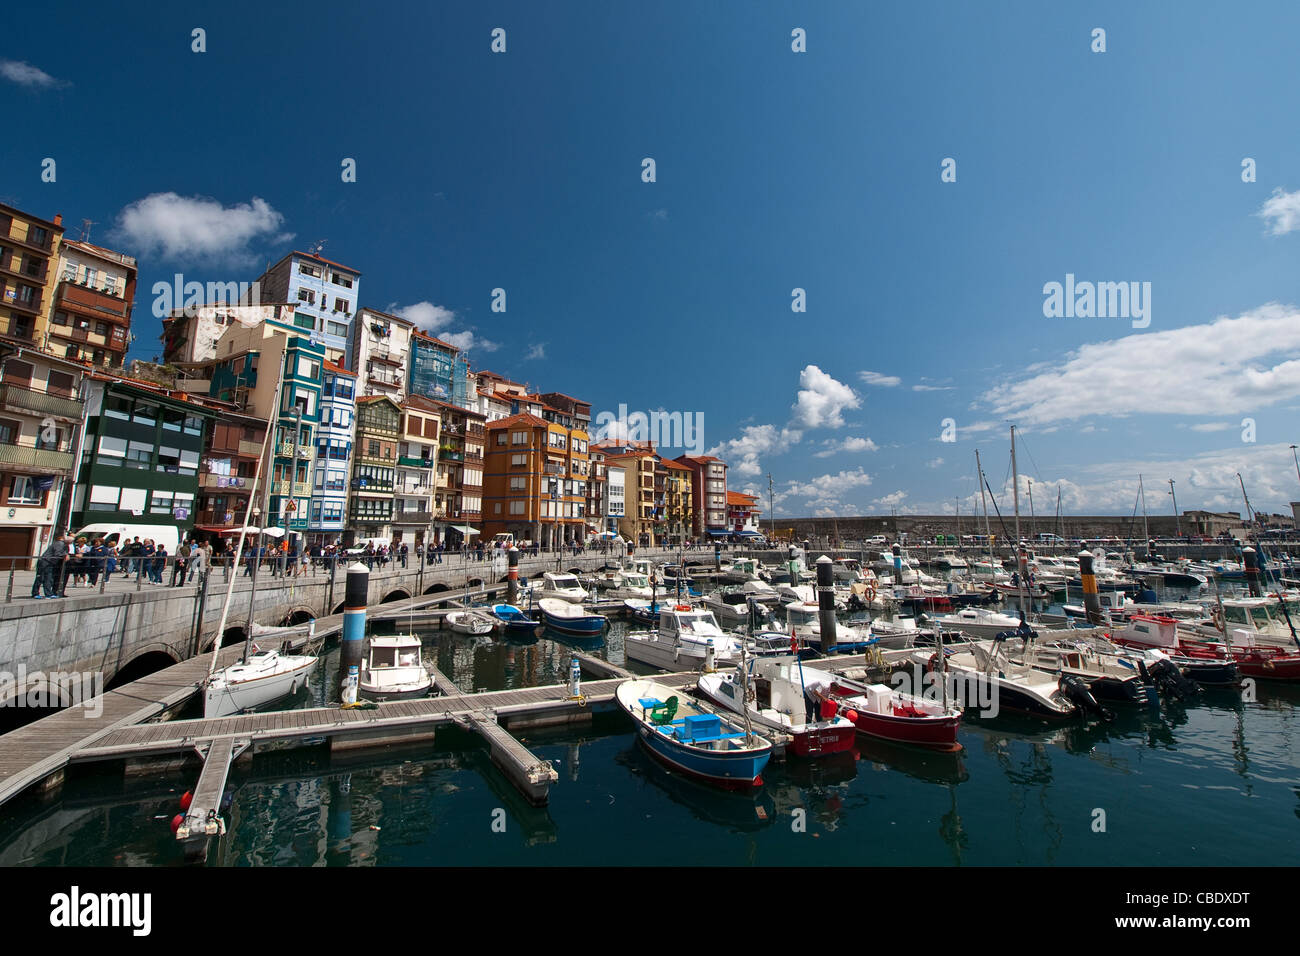 Old port of the village of Bermeo, province of Biscay, Basque Country, Euskadi, Spain, Europe. - Stock Image